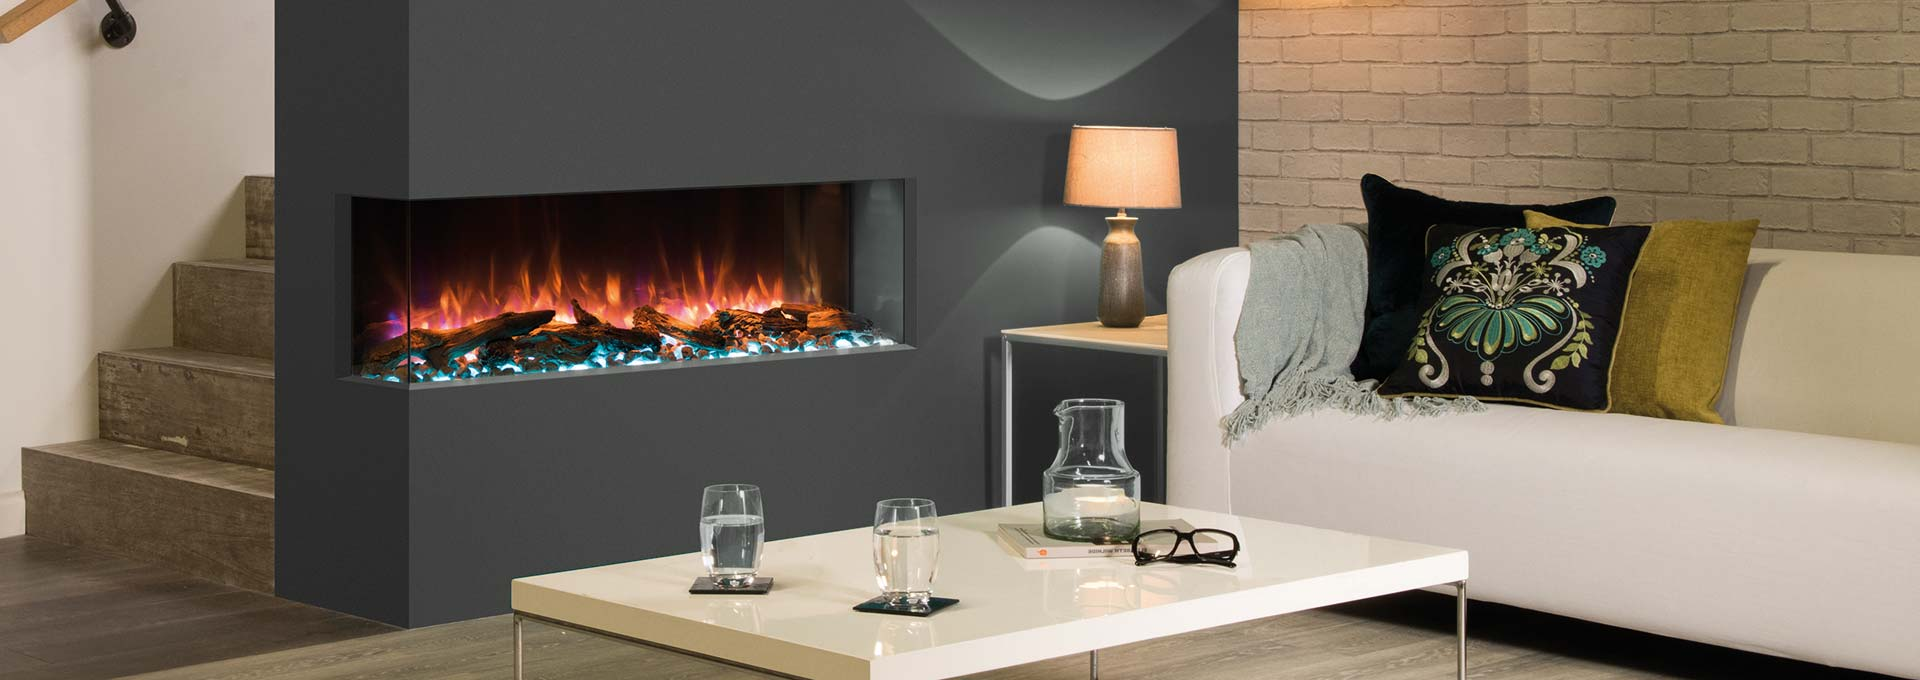 Remarkable Skope E110 Mult Sided Electric Fireplace Regency Download Free Architecture Designs Rallybritishbridgeorg